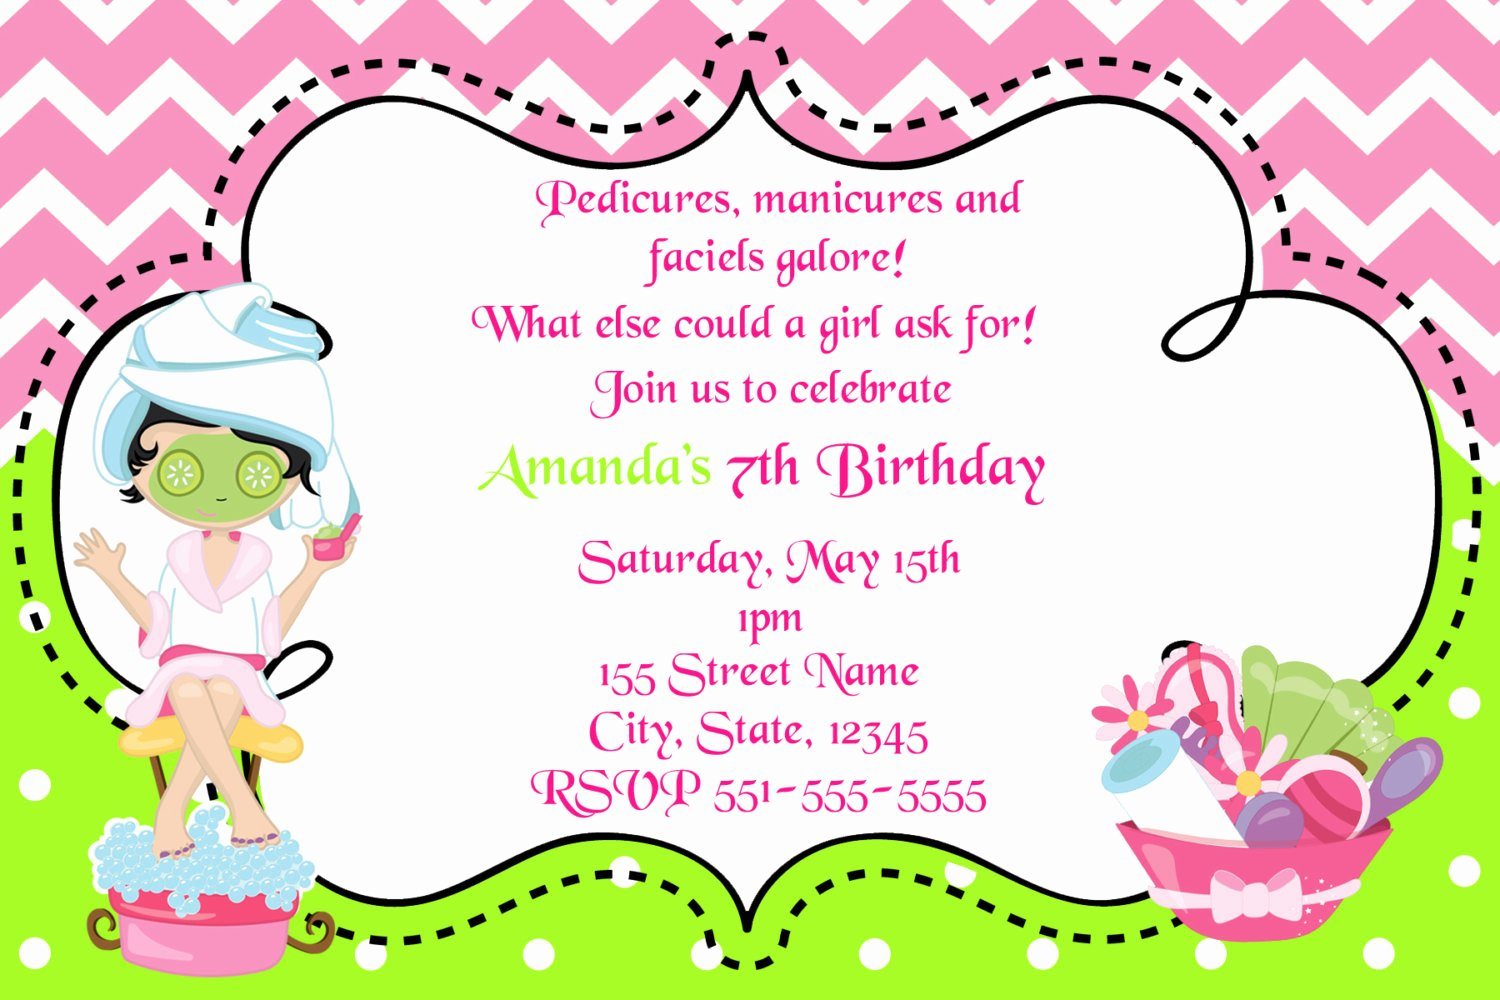 Spa Day Invitation New Spa Day Birthday Invitation Girls Birthday Invitations